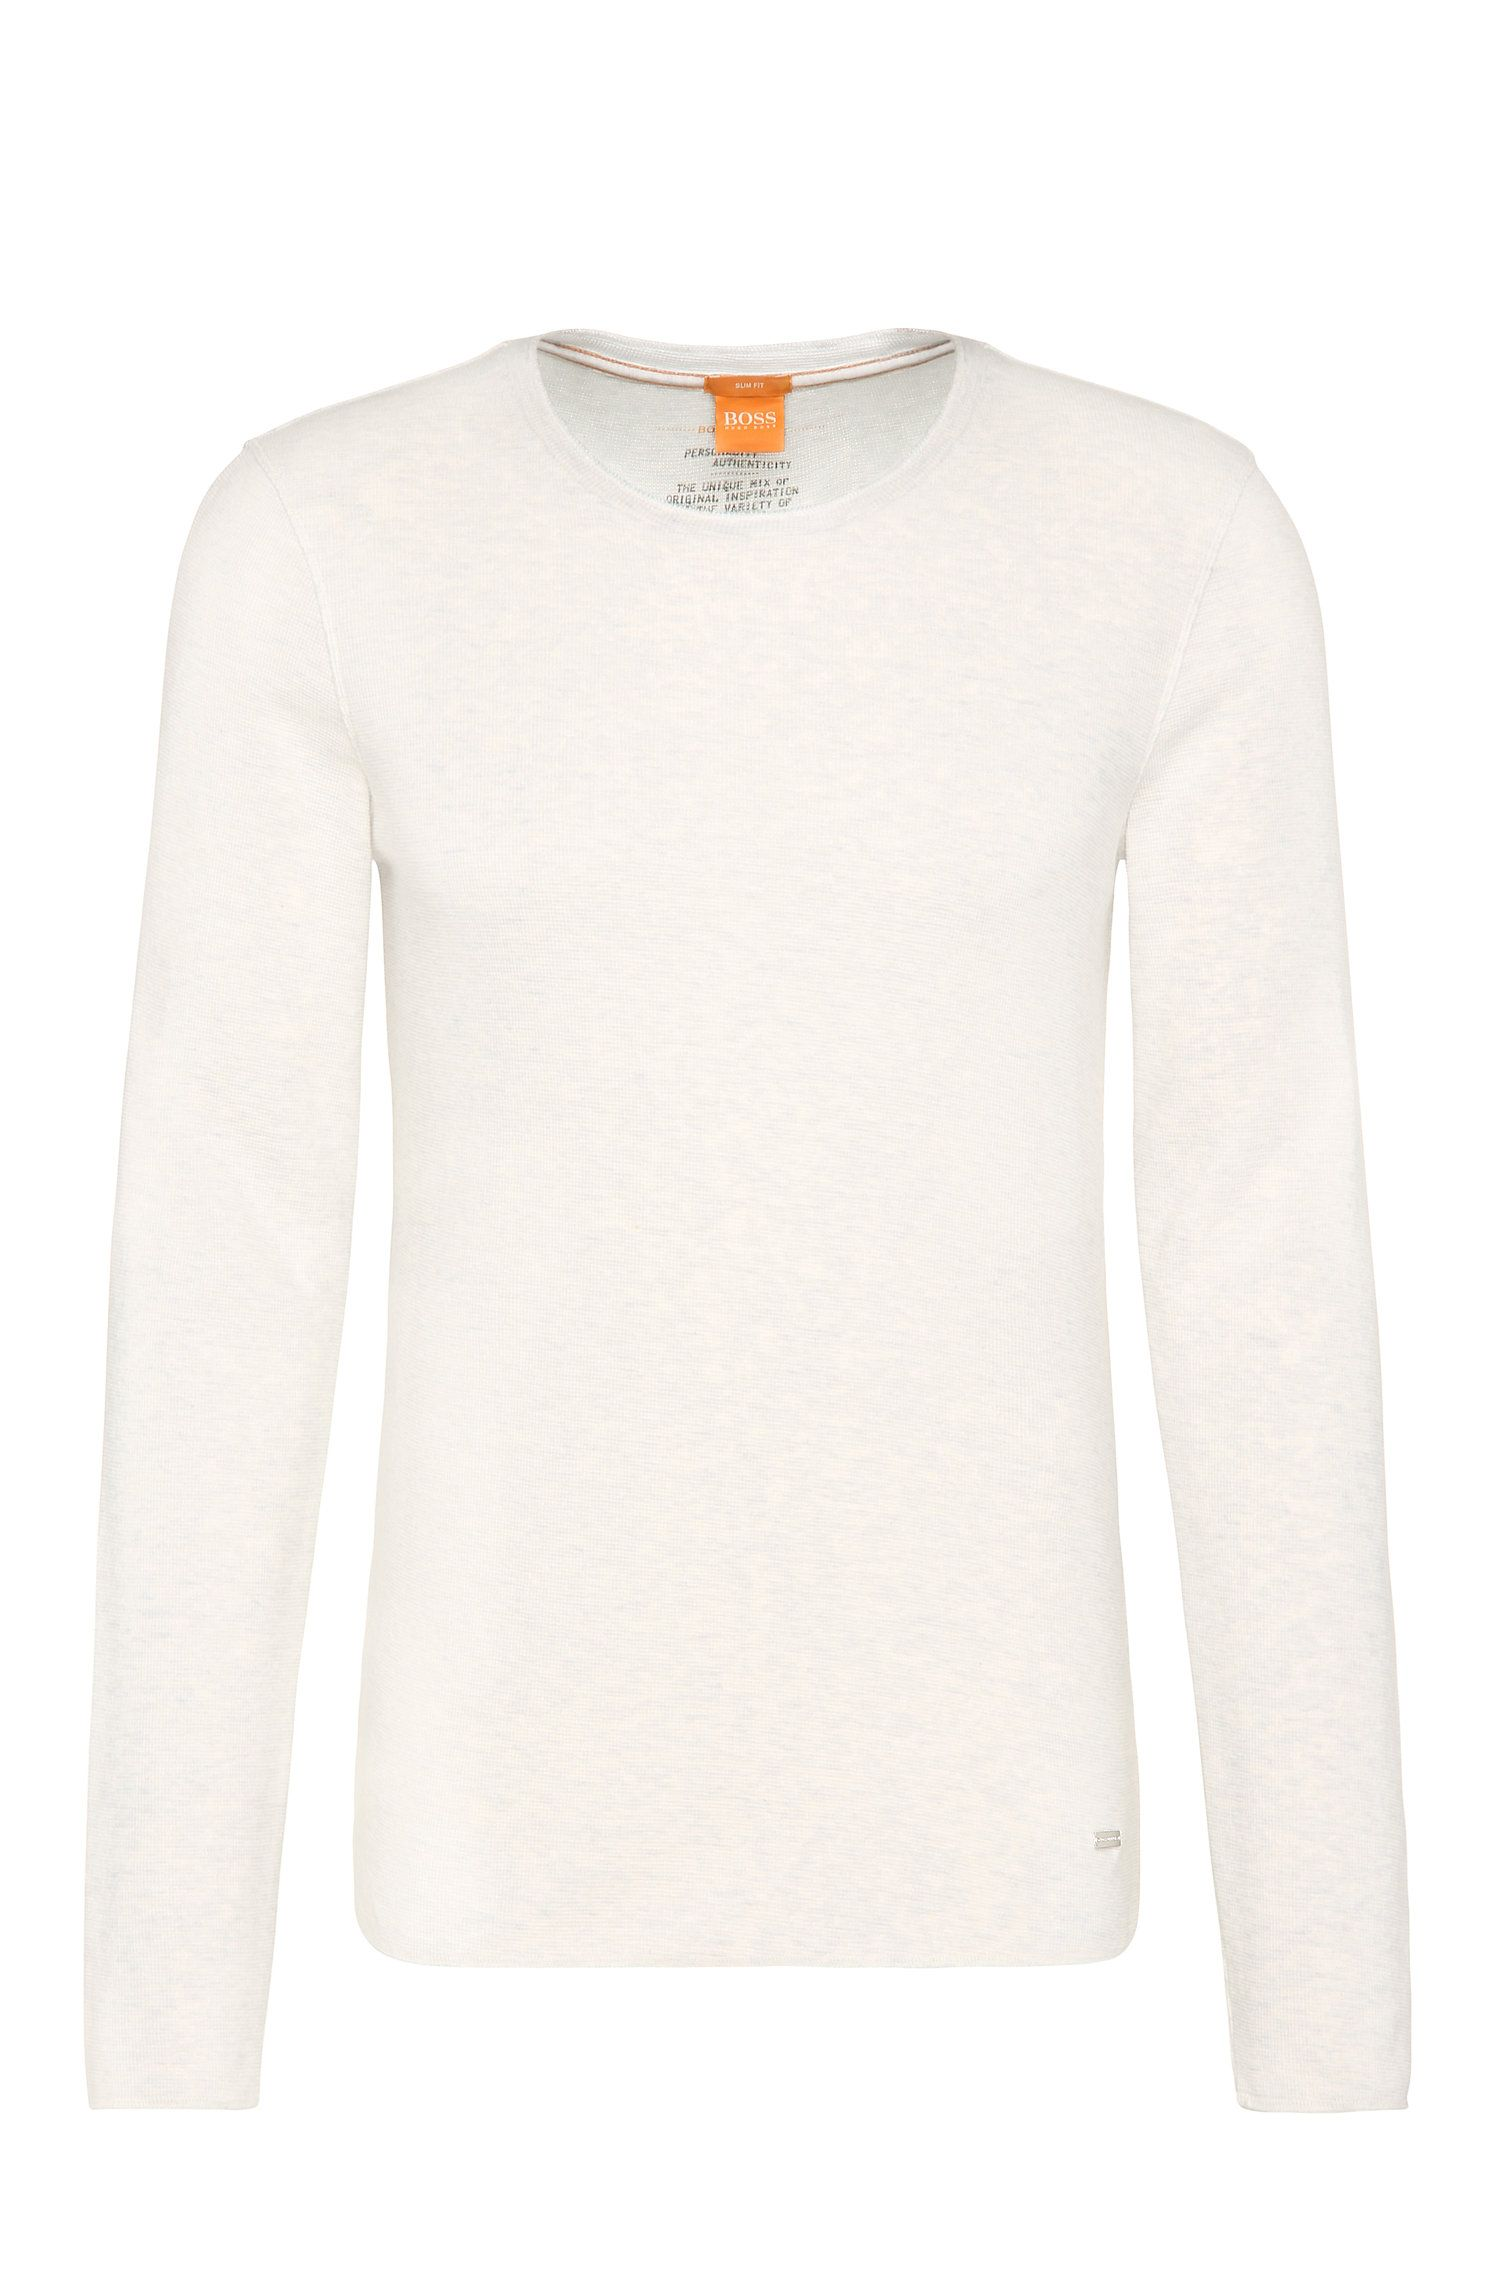 Slim-fit T-shirt in waffle fabric